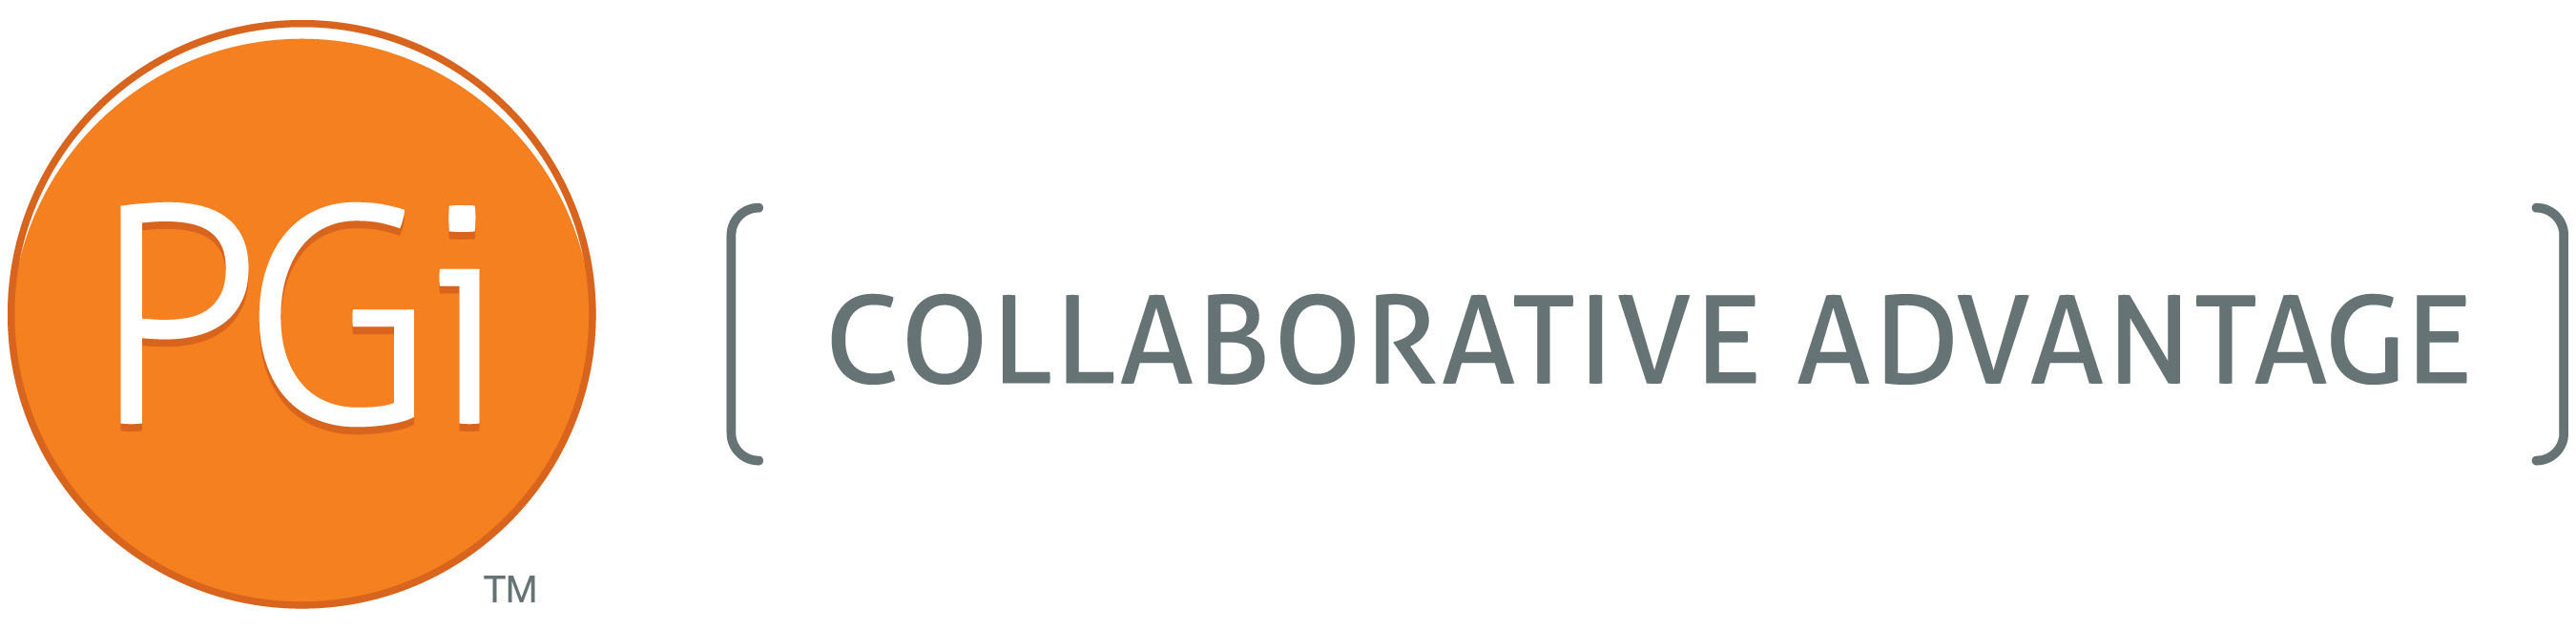 PGi has been a global leader in collaboration and virtual meetings for over 20 years. PGi's cloud-based solutions deliver multi-point, real-time virtual collaboration using video, voice, mobile, web streaming and file sharing technologies.